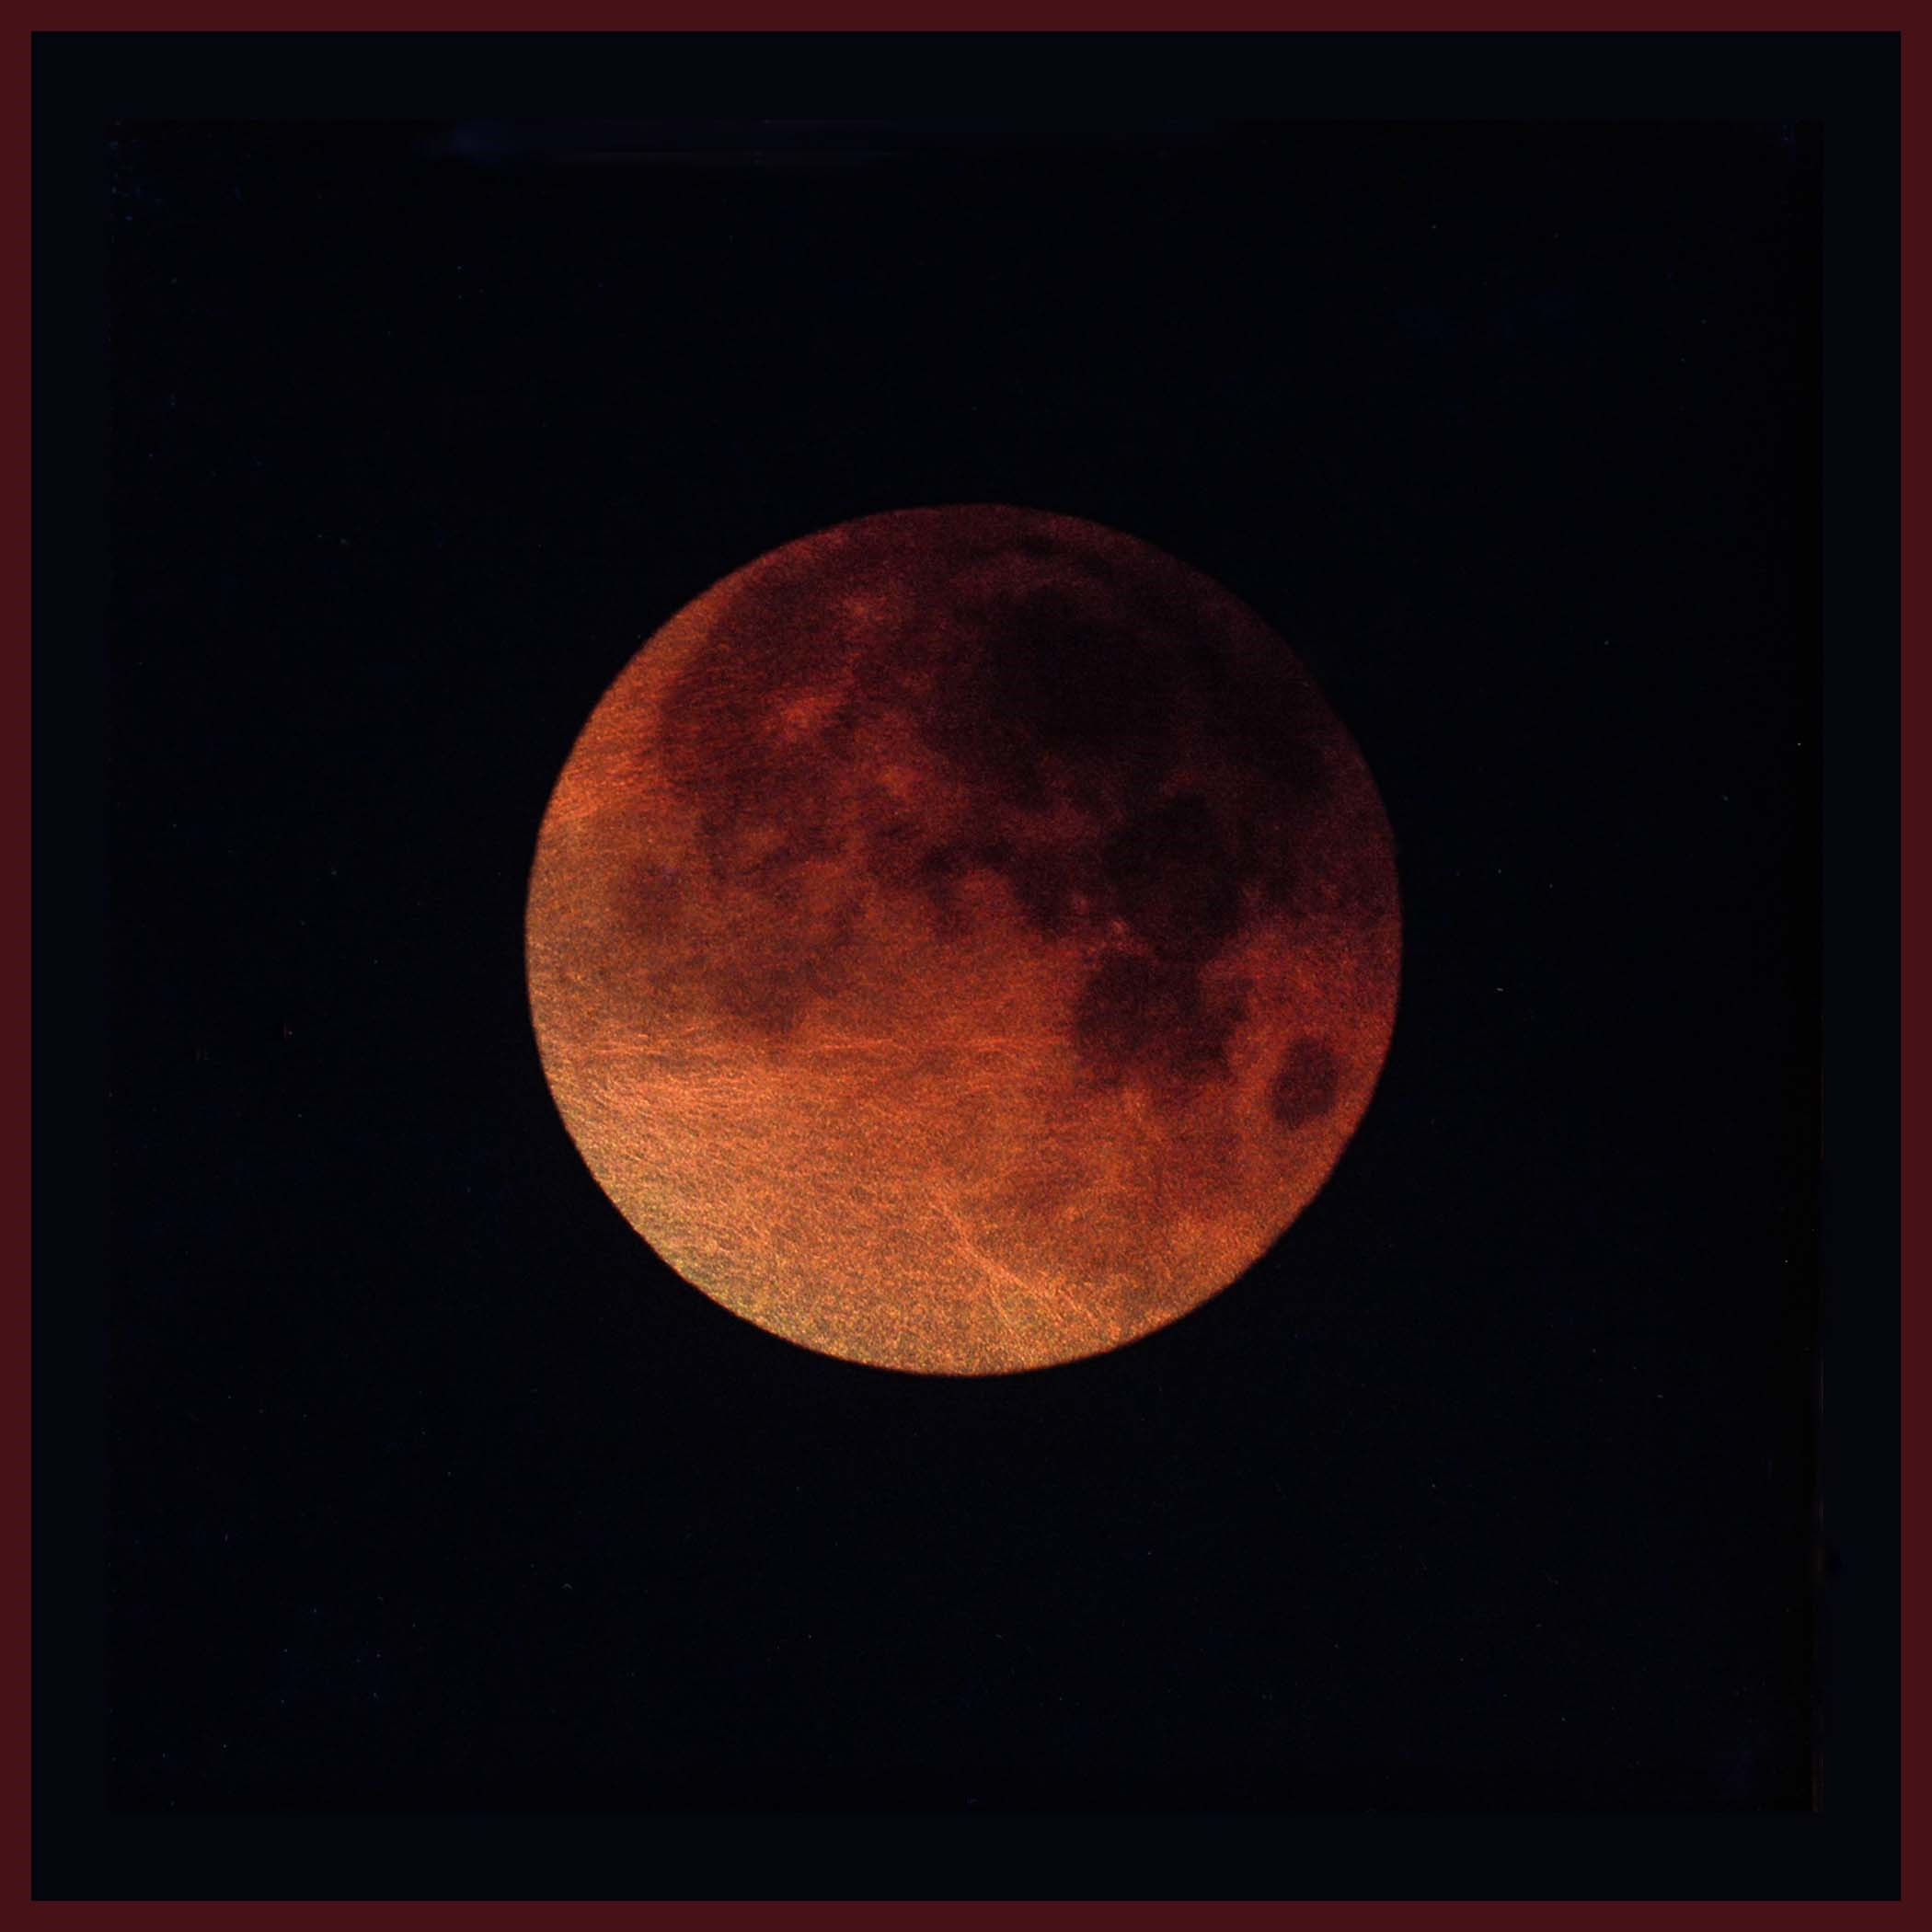 Kate Breakey, Lunar Eclipse Jan 2018 Tucson Az (Blood moon